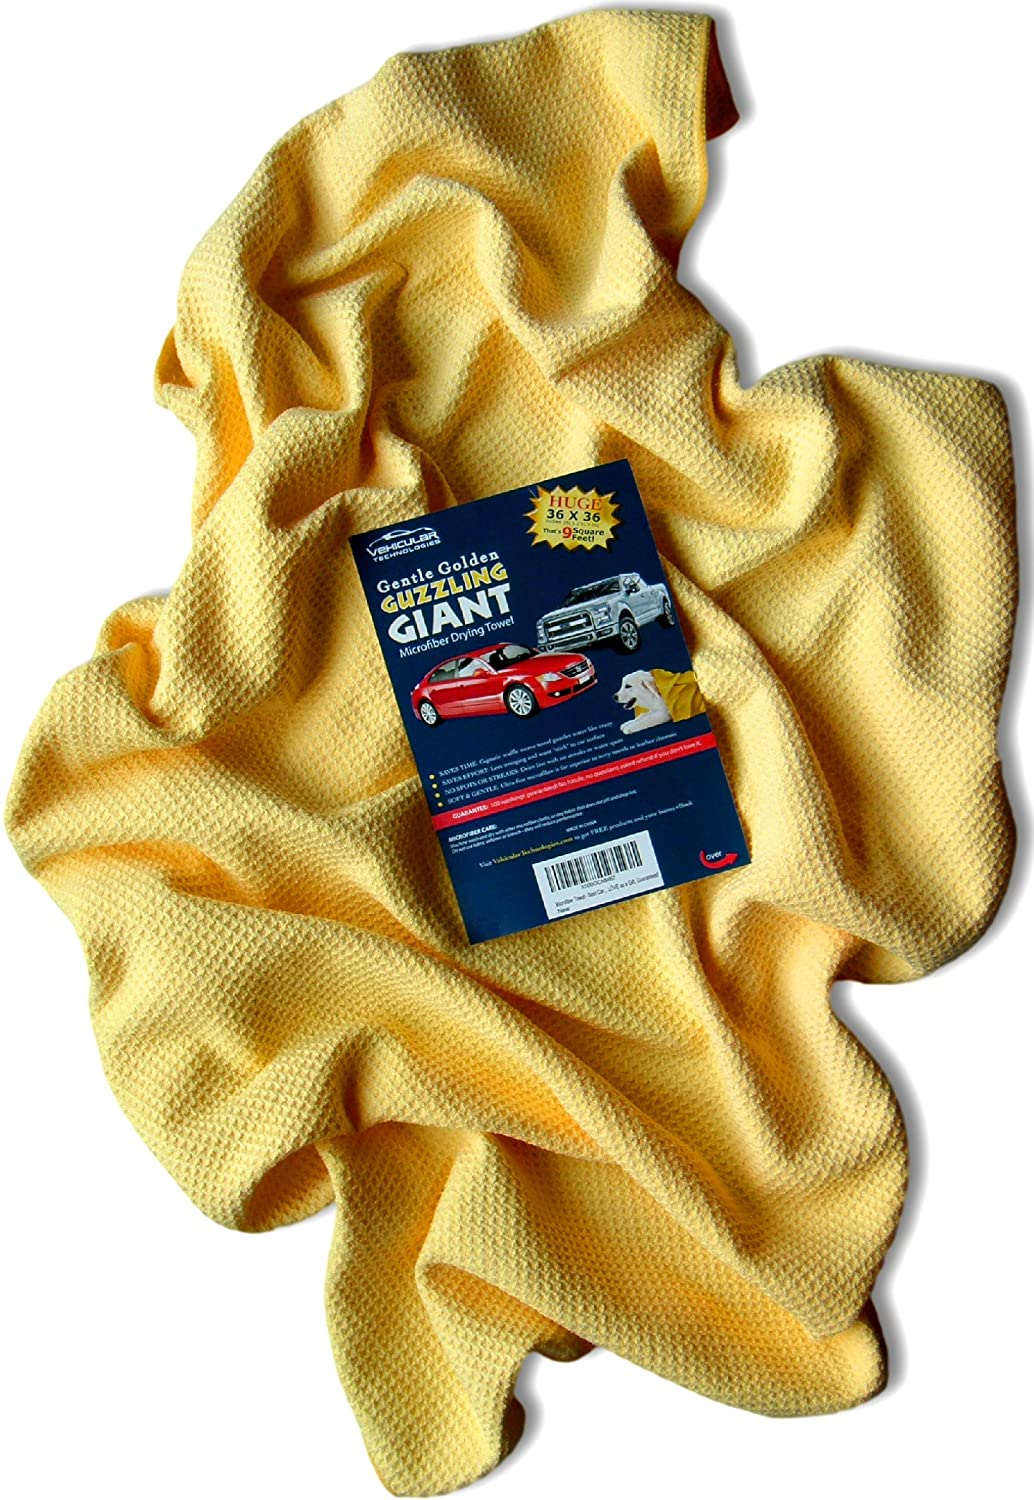 Microfiber Towel -- Giant 36 x 36 inch Premium Waffle Weave is Super Absorbent -- Fast Drying of Pets, Showers, Hair, Cleaning Spills, too -- Professional Automotive Cloth is Lint and Streak-Free